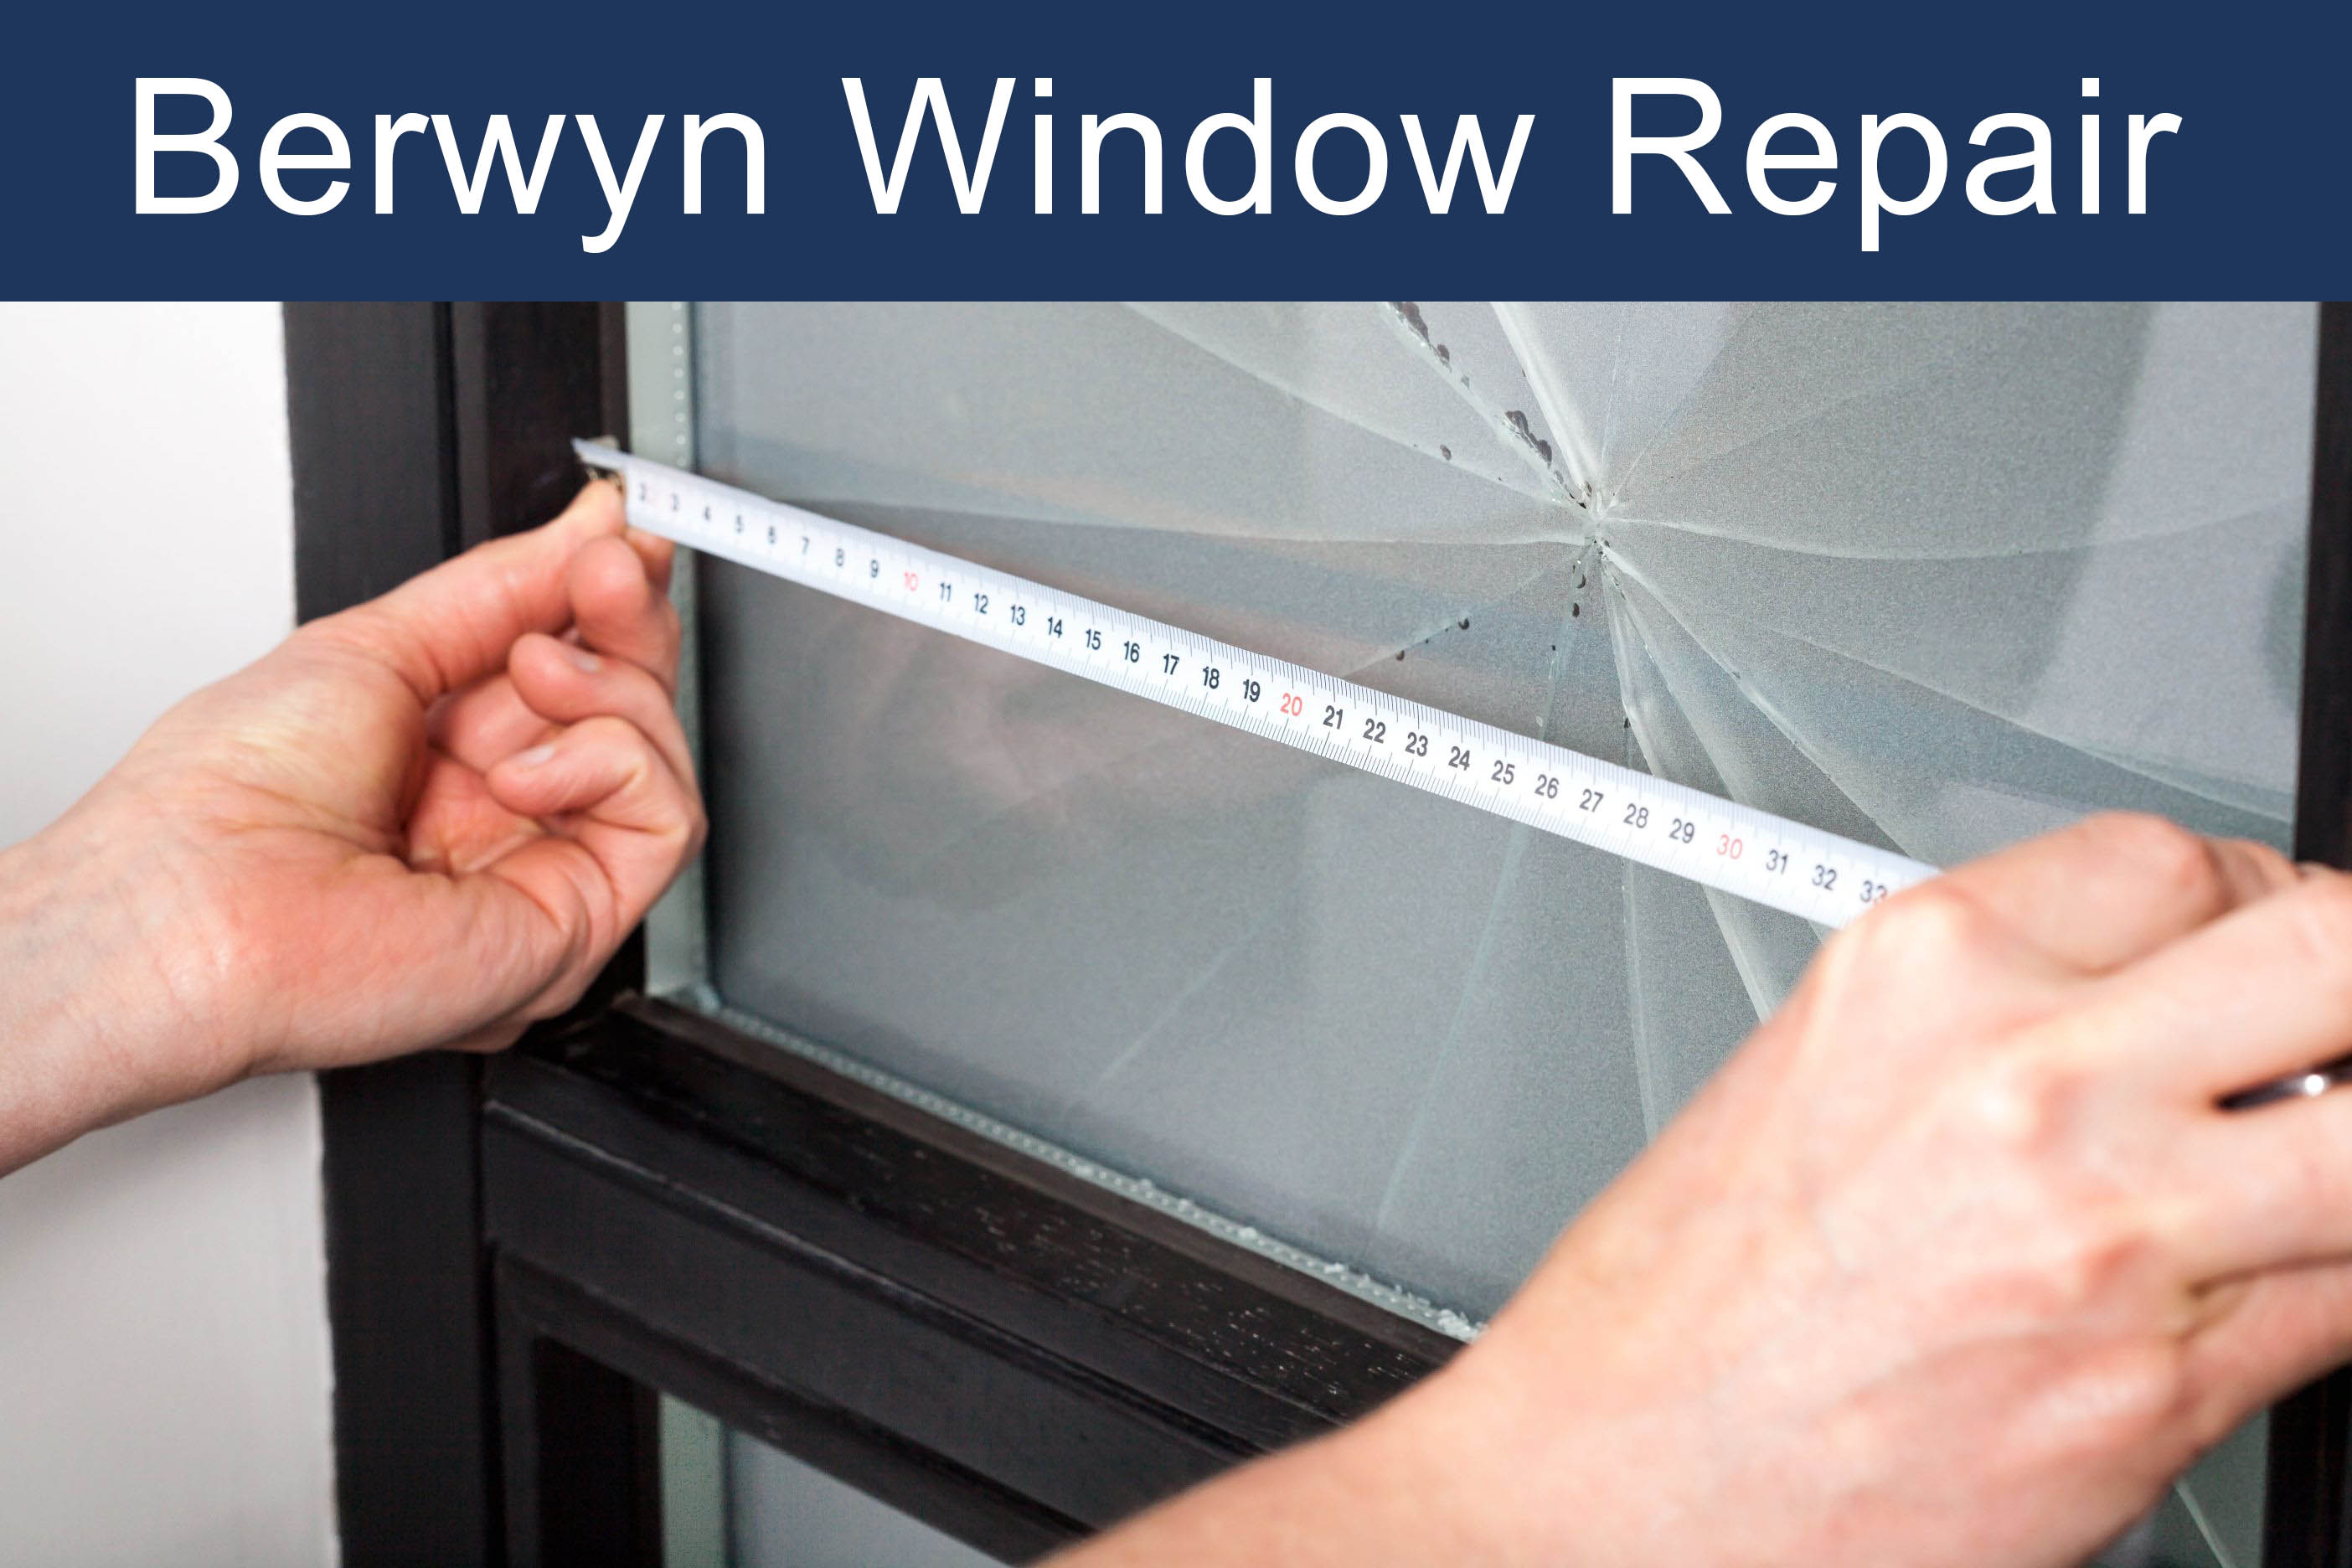 berwyn window repair